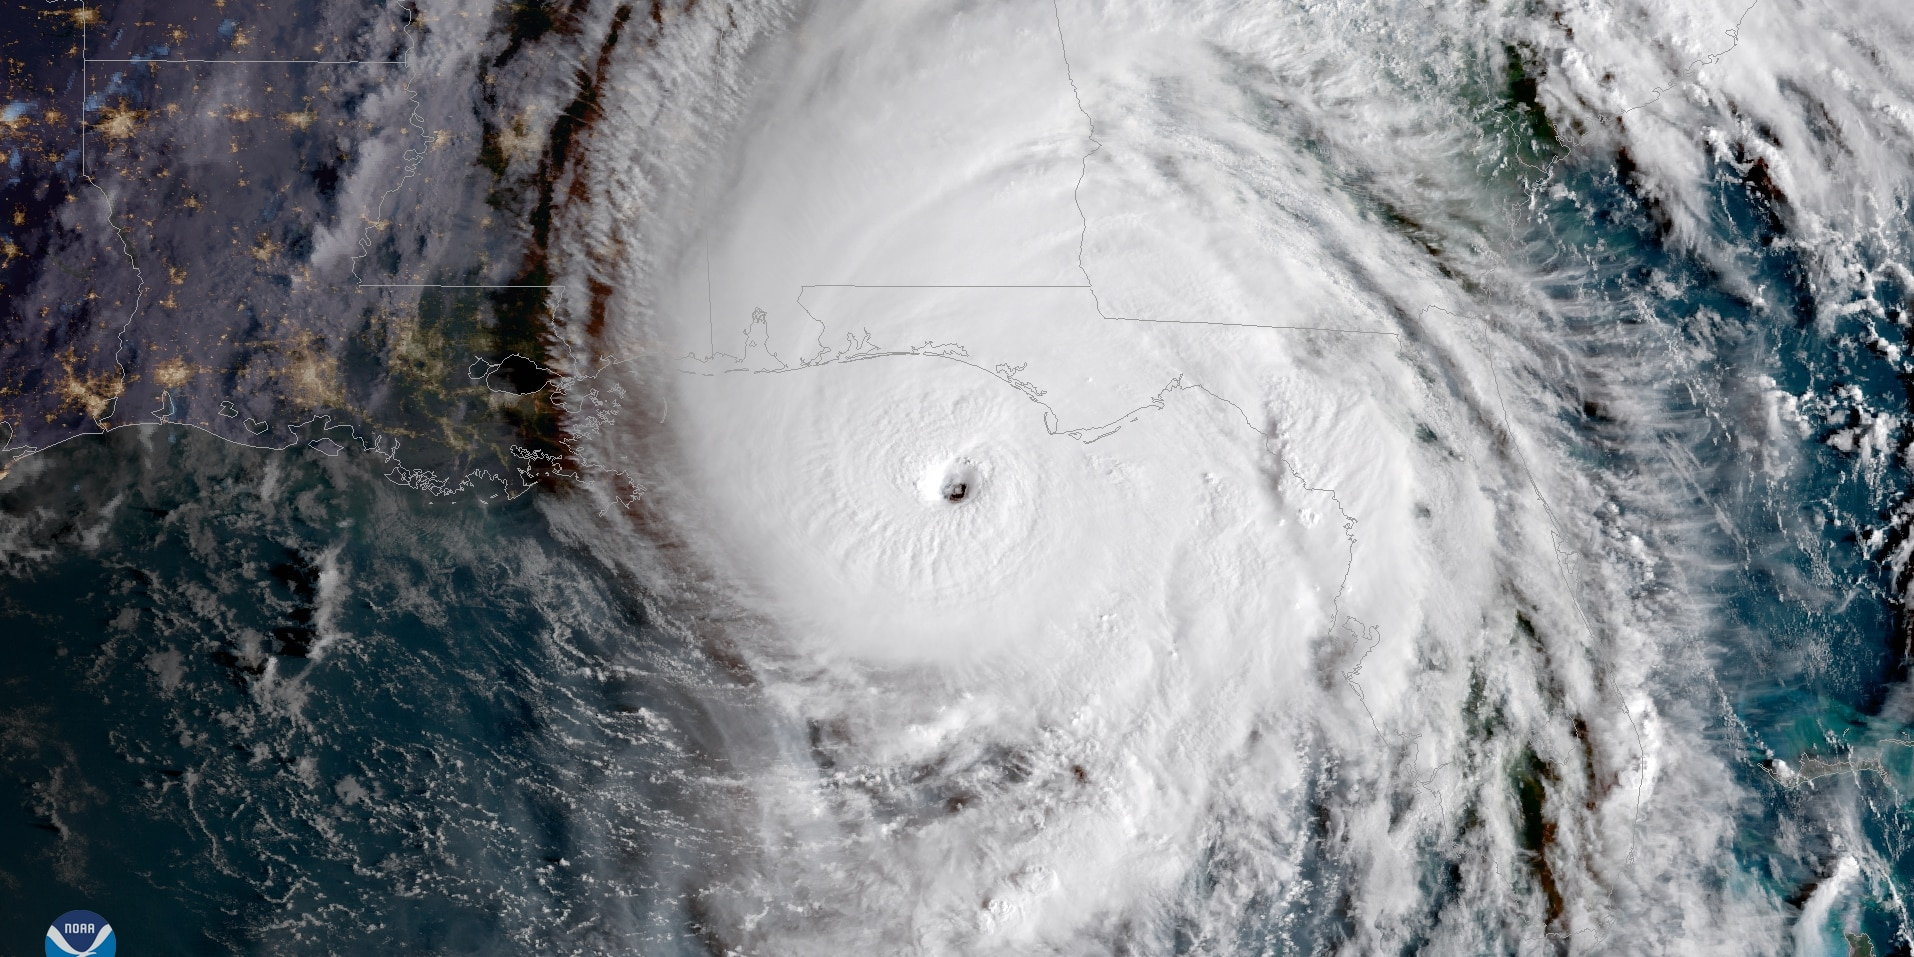 NOAA predicts a 'near normal' 2019 hurricane season for the Atlantic